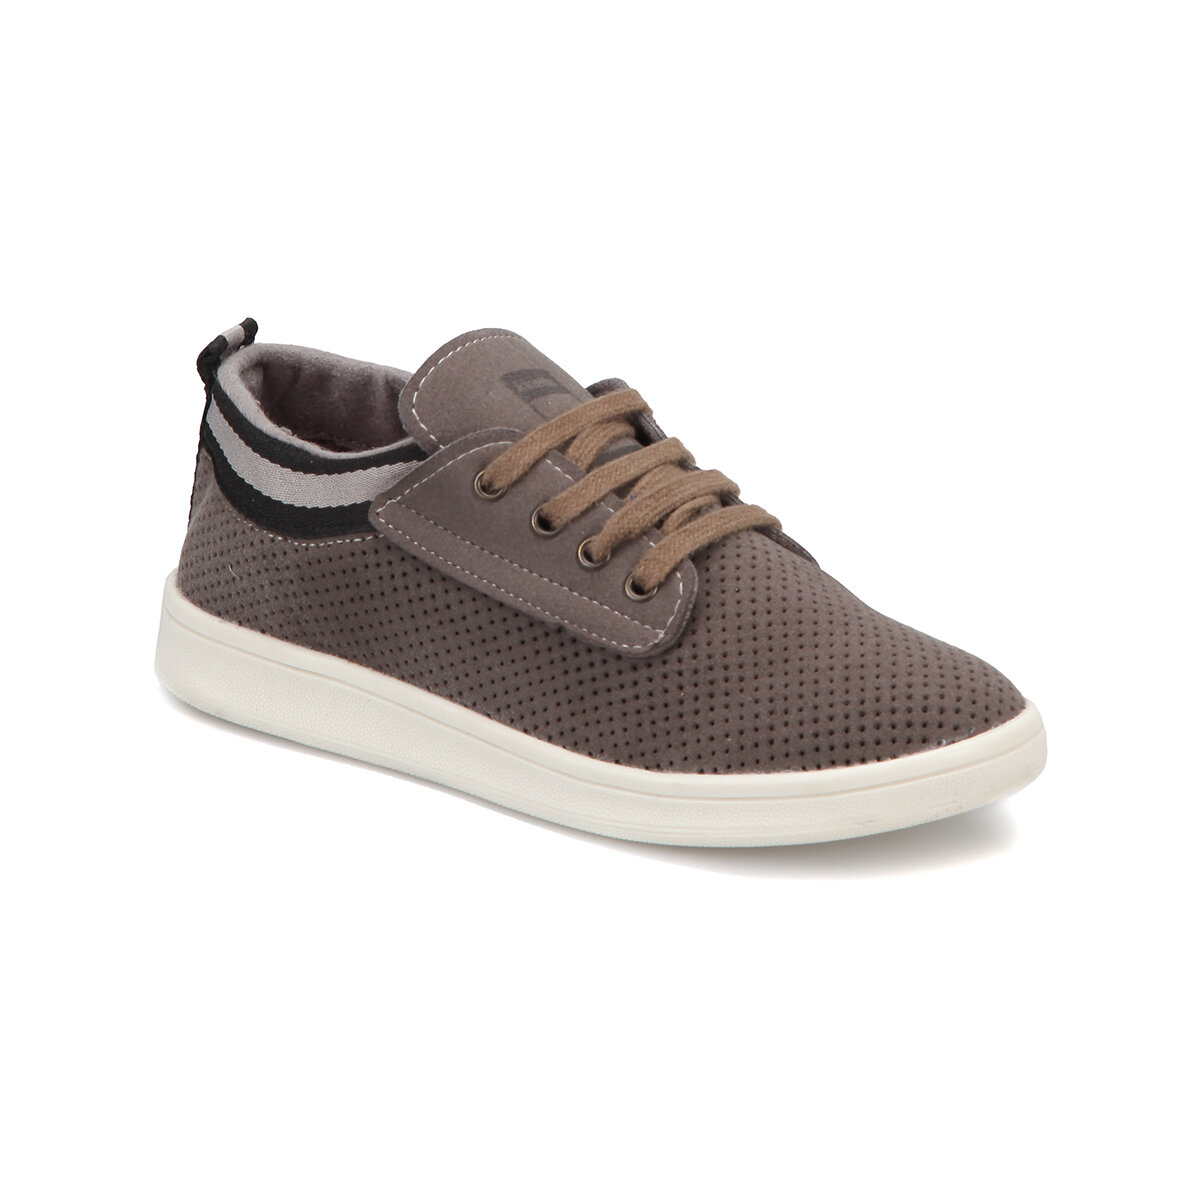 FLO TONİ G Khaki Men 'S Sneaker Shoes KINETIX